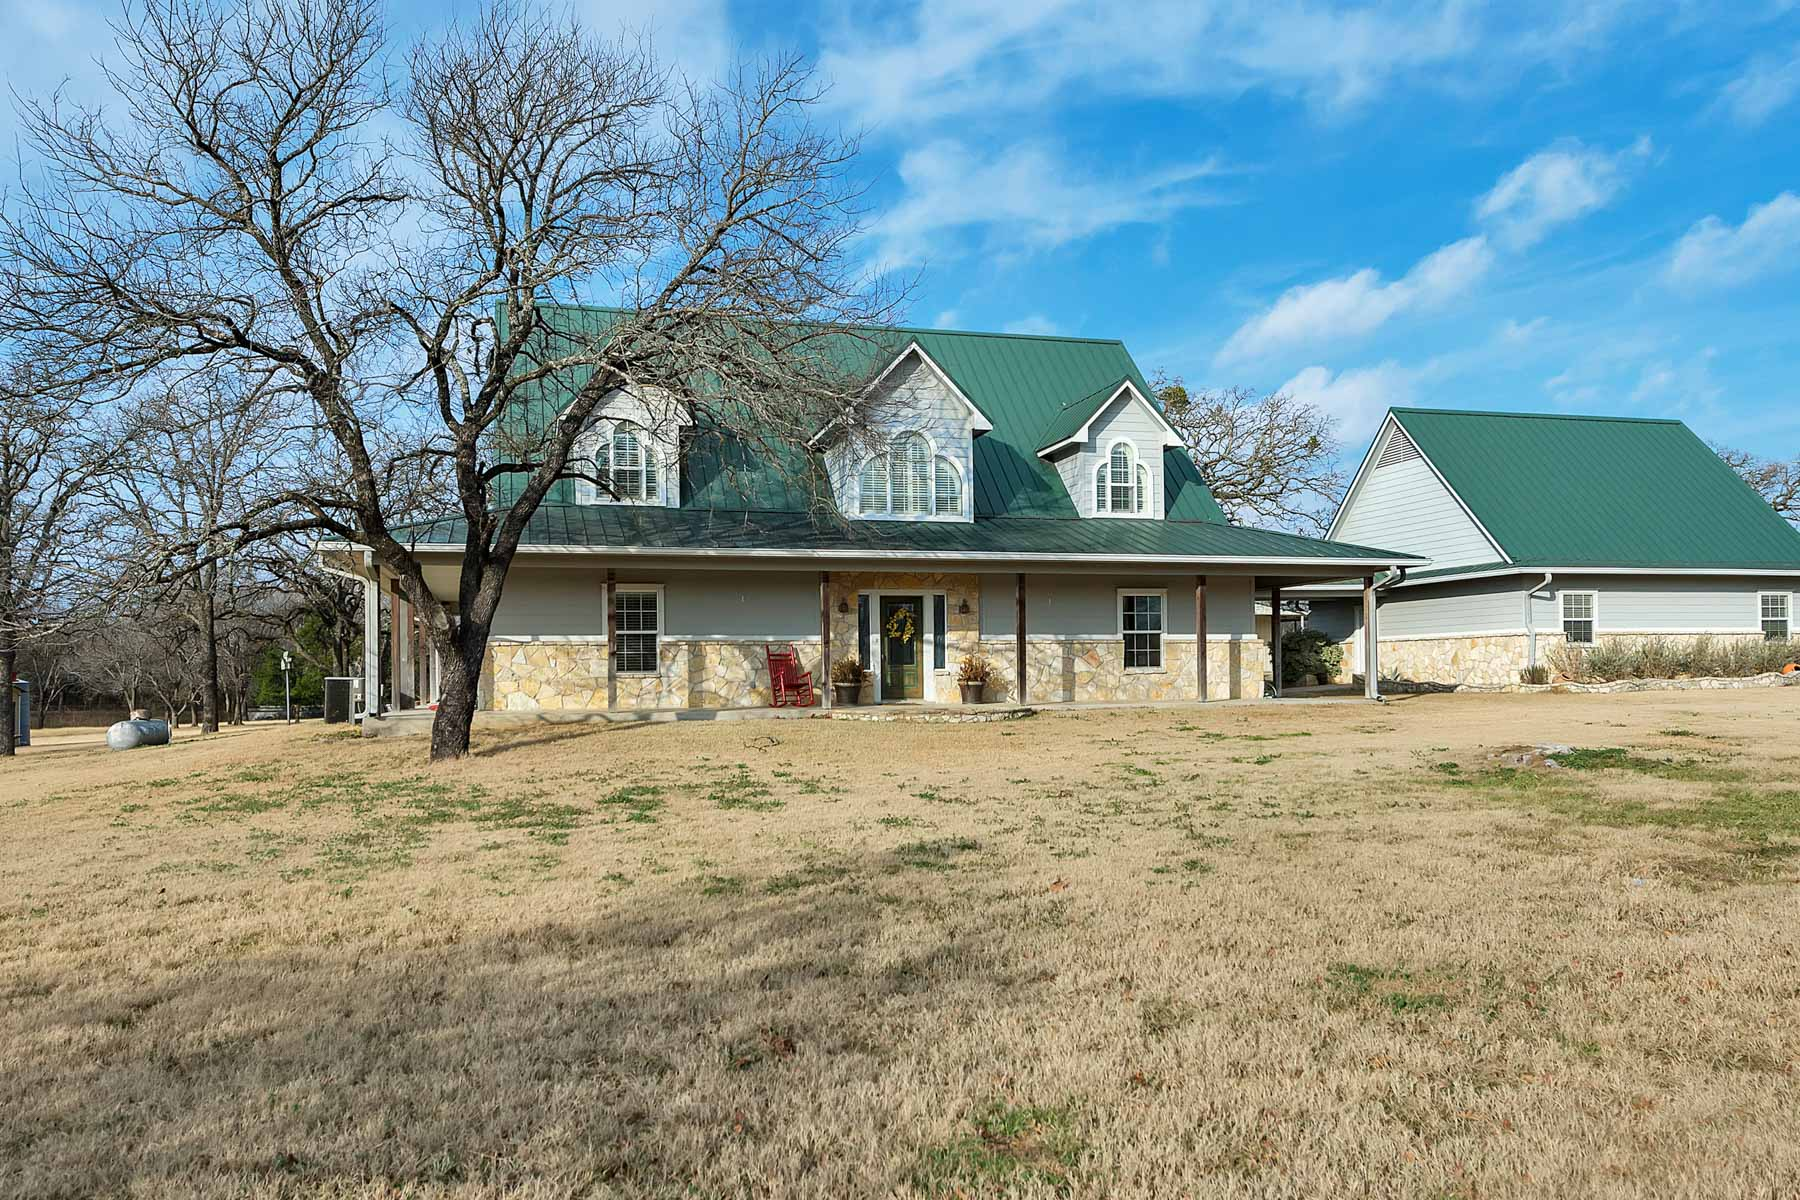 Farm / Ranch / Plantation for Sale at 3205 FM2280, Cleburne Cleburne, Texas 76031 United States